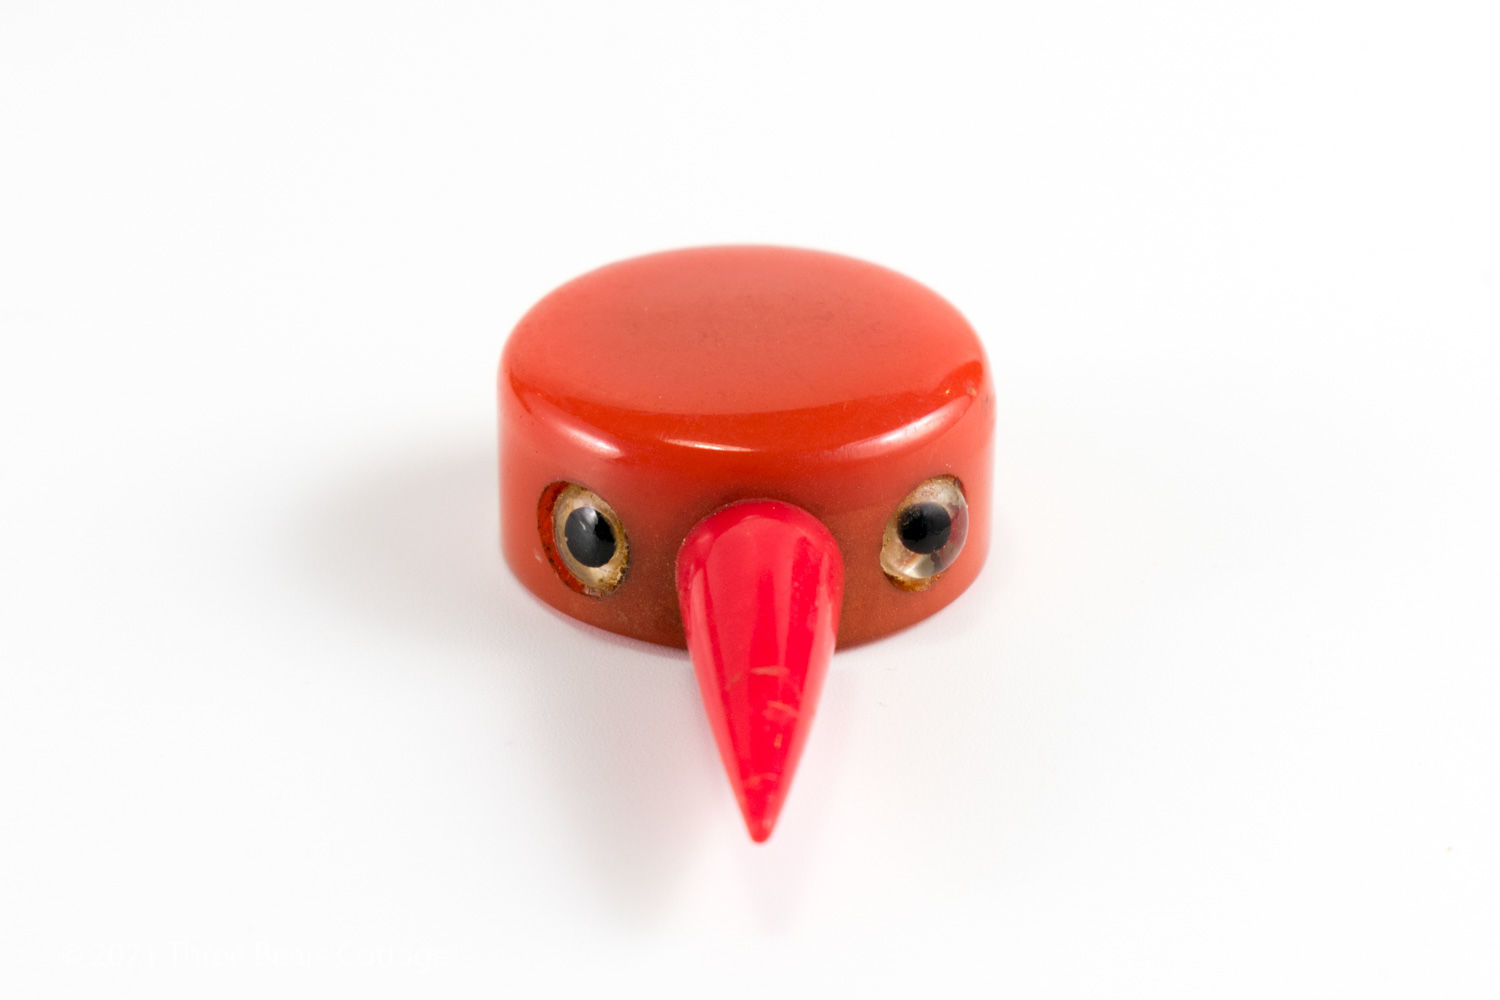 Close up view of head of Tagua Nut bird bottle stopper